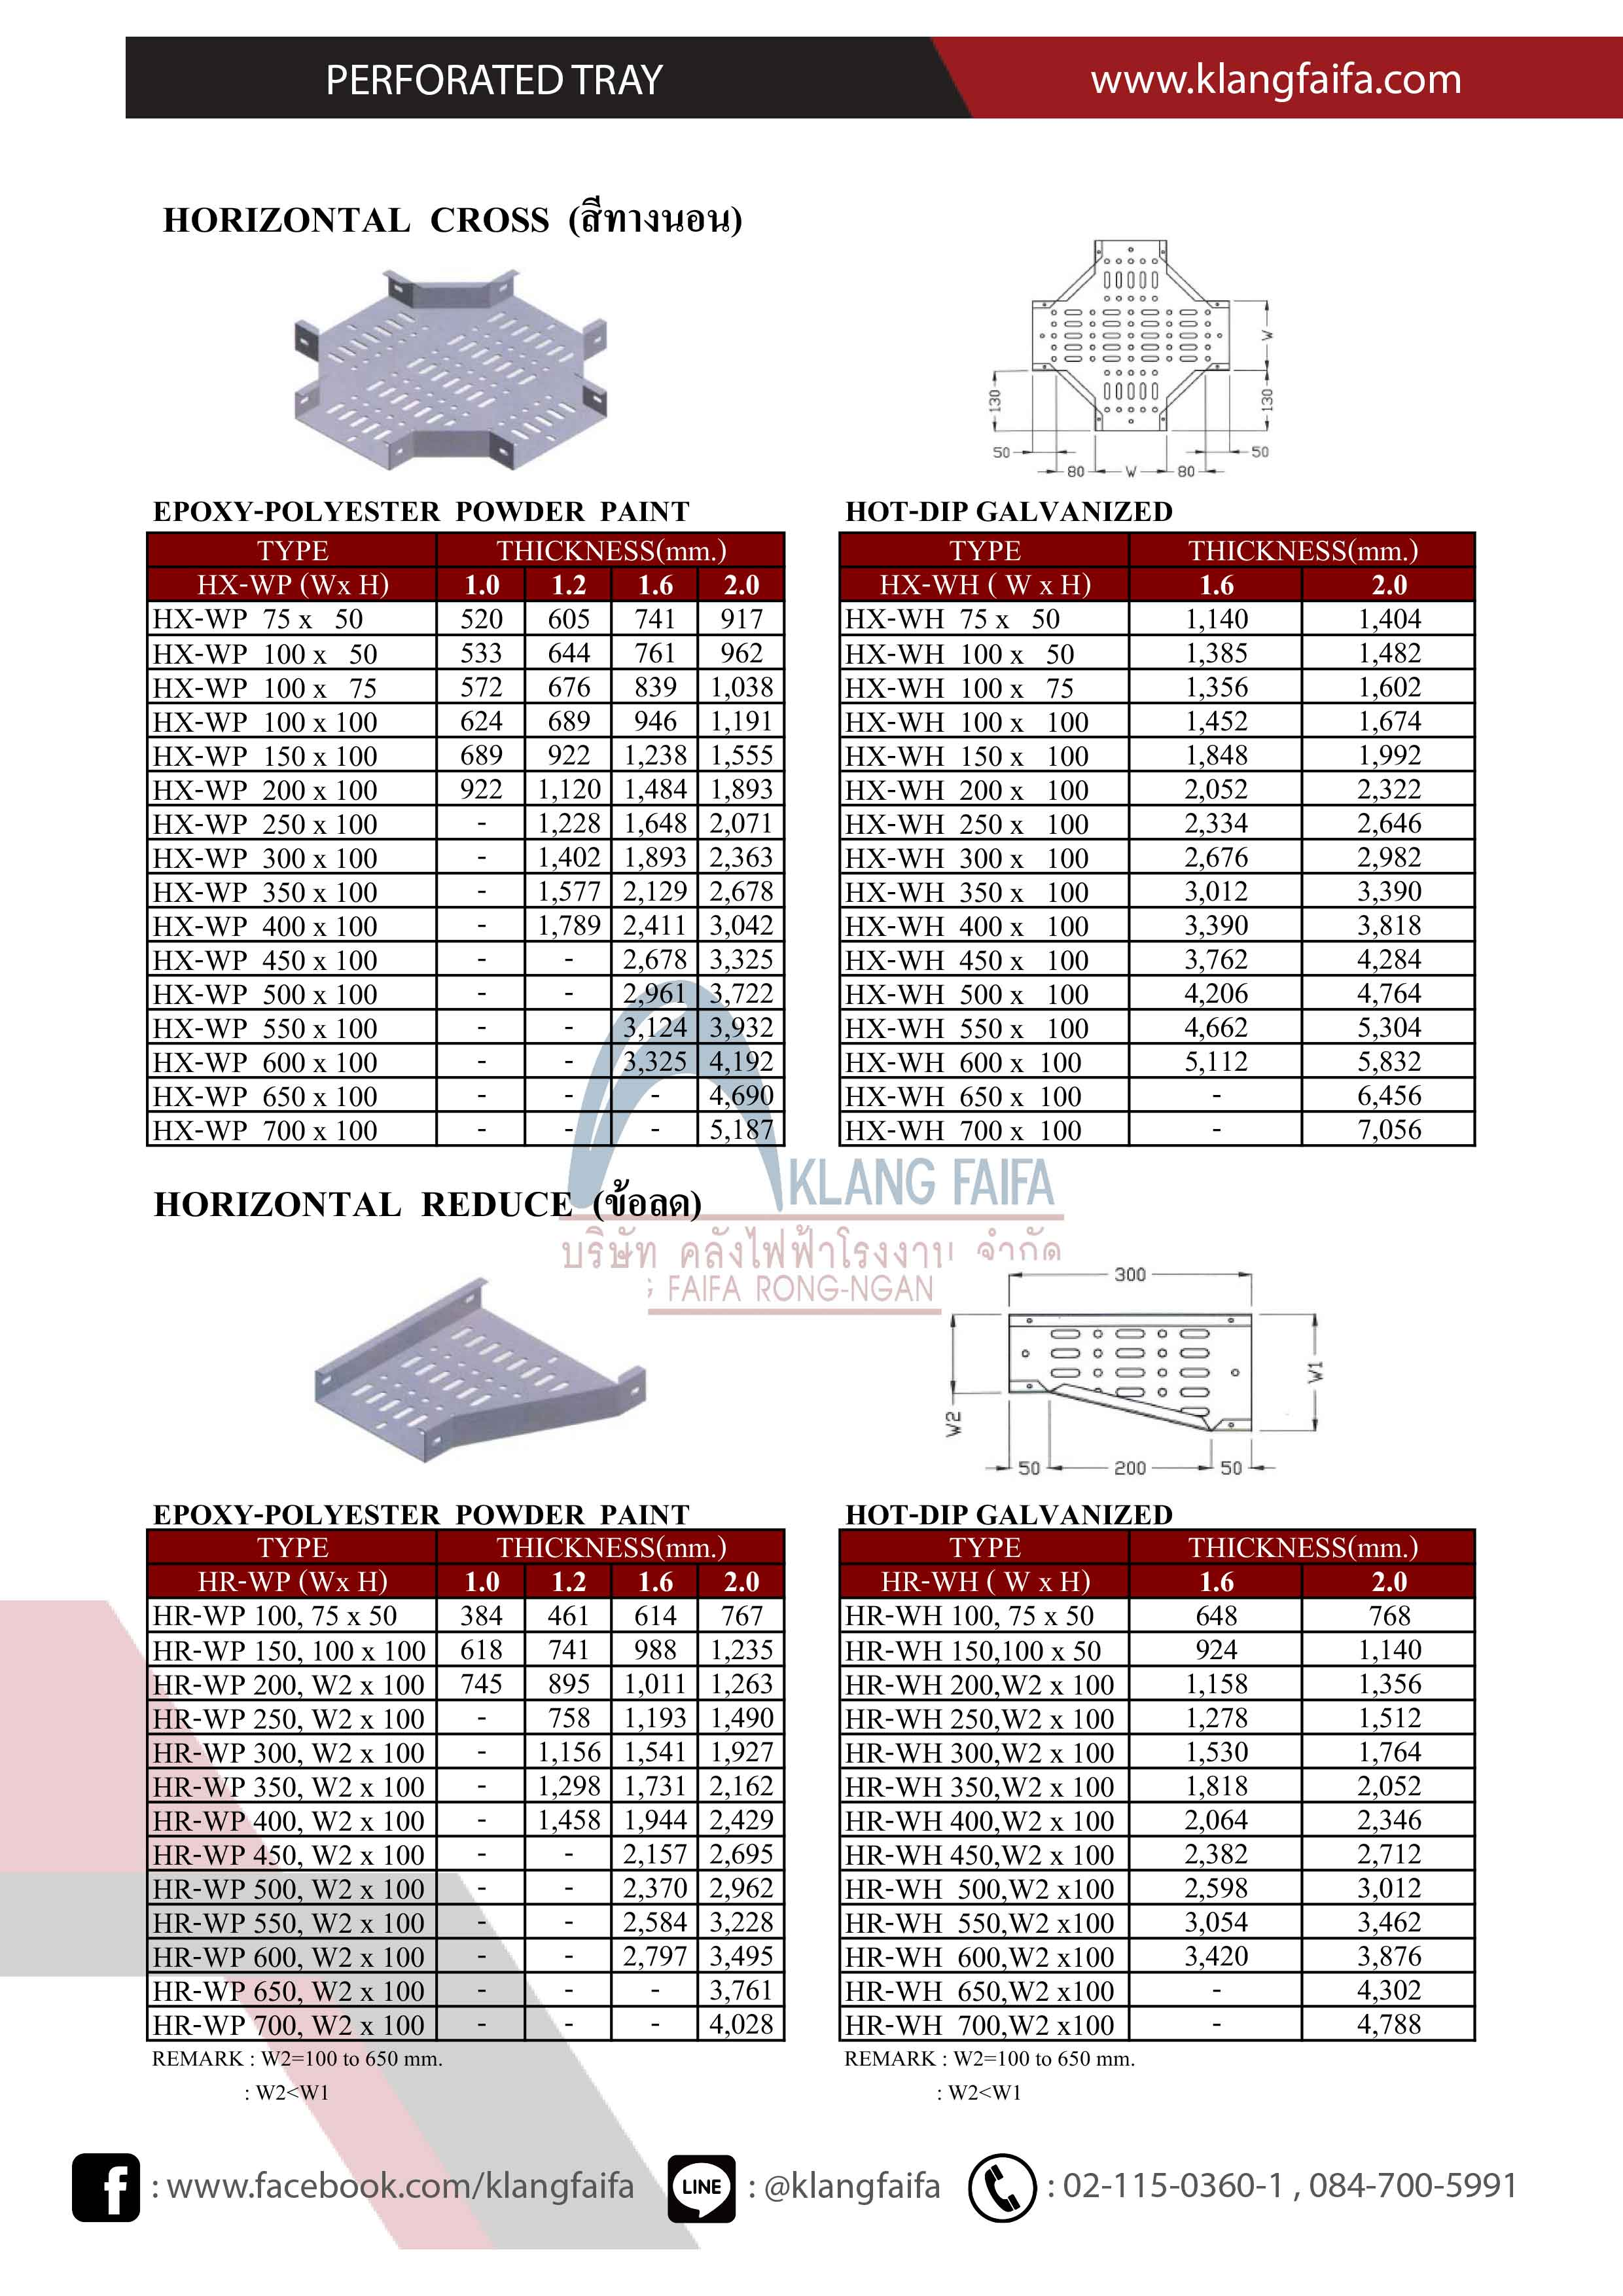 PERFORATED_TRAY,  EXPOXY_PERFORATED_TRAY,  HDG_PERFORATED_TRAY,  เฟอฟอเลทเทรย์แบบอาบสังกะสี , เฟอฟอเลทเทรย์พ่นสี, เทรย์เบา, เทรย์เบาพ่นสี,  TIC_Cable_Tray,  TIC_PERFORATED_TRAY_HDG